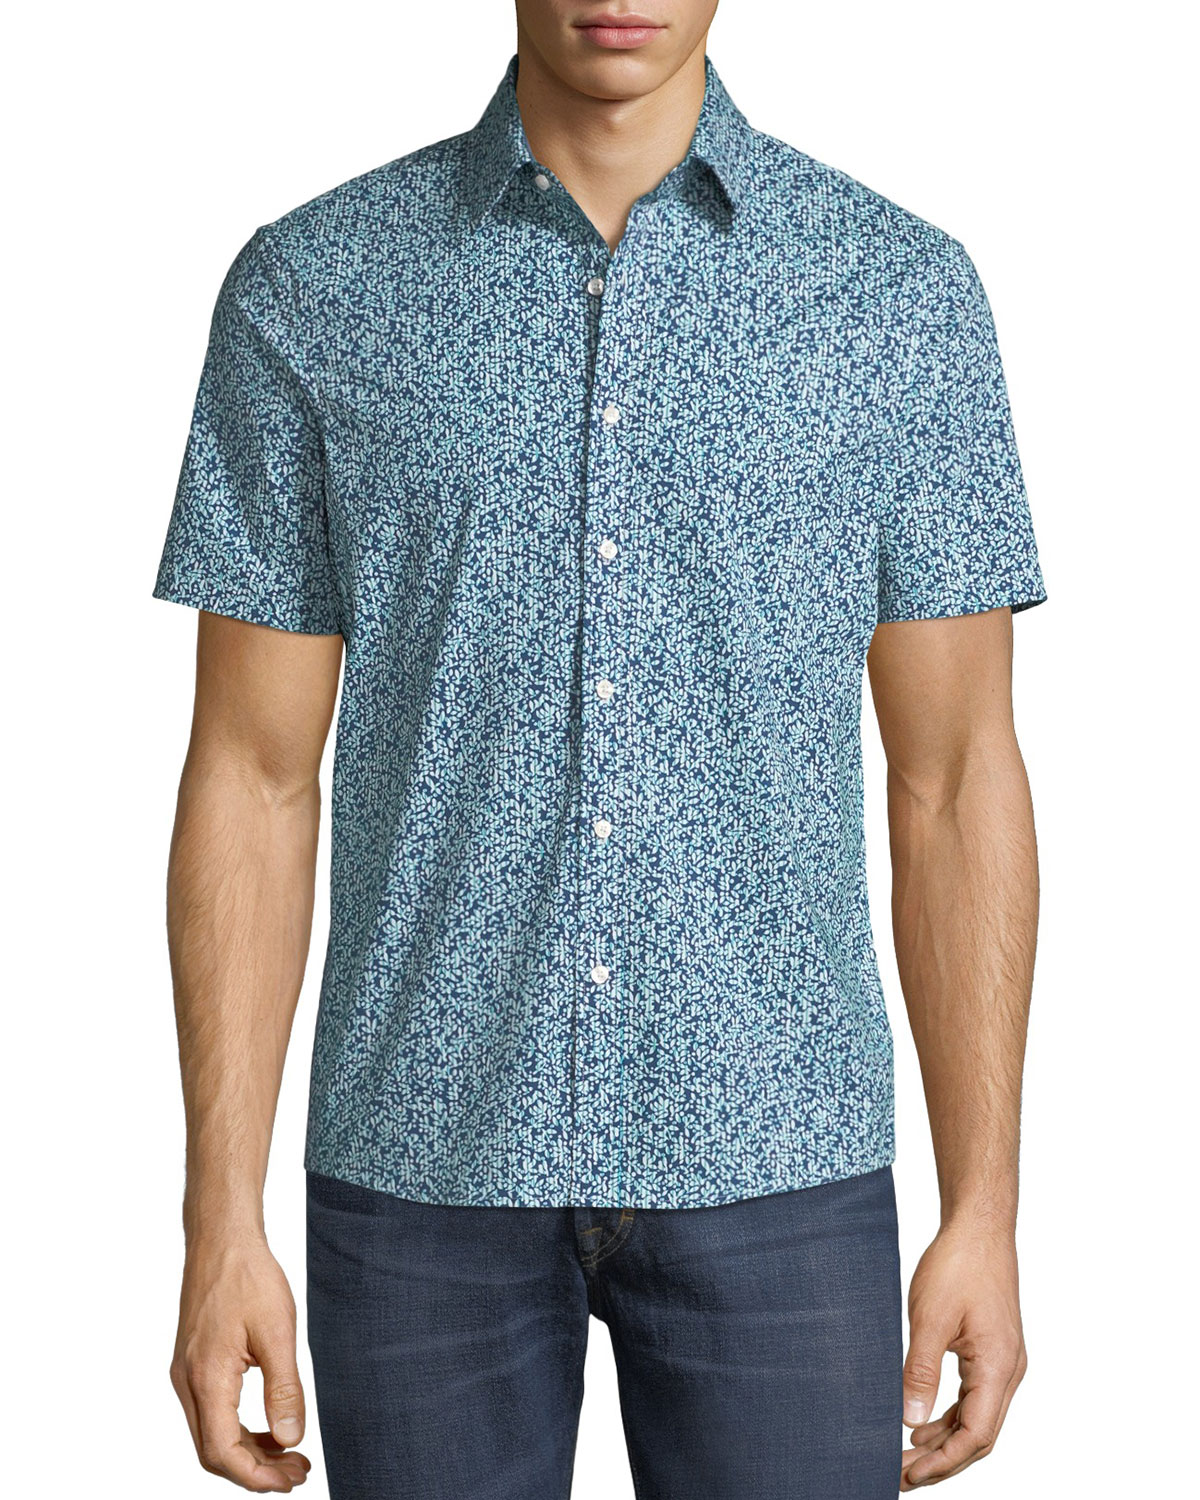 Men's Trim Fit Short-Sleeve Button-Front Shirt